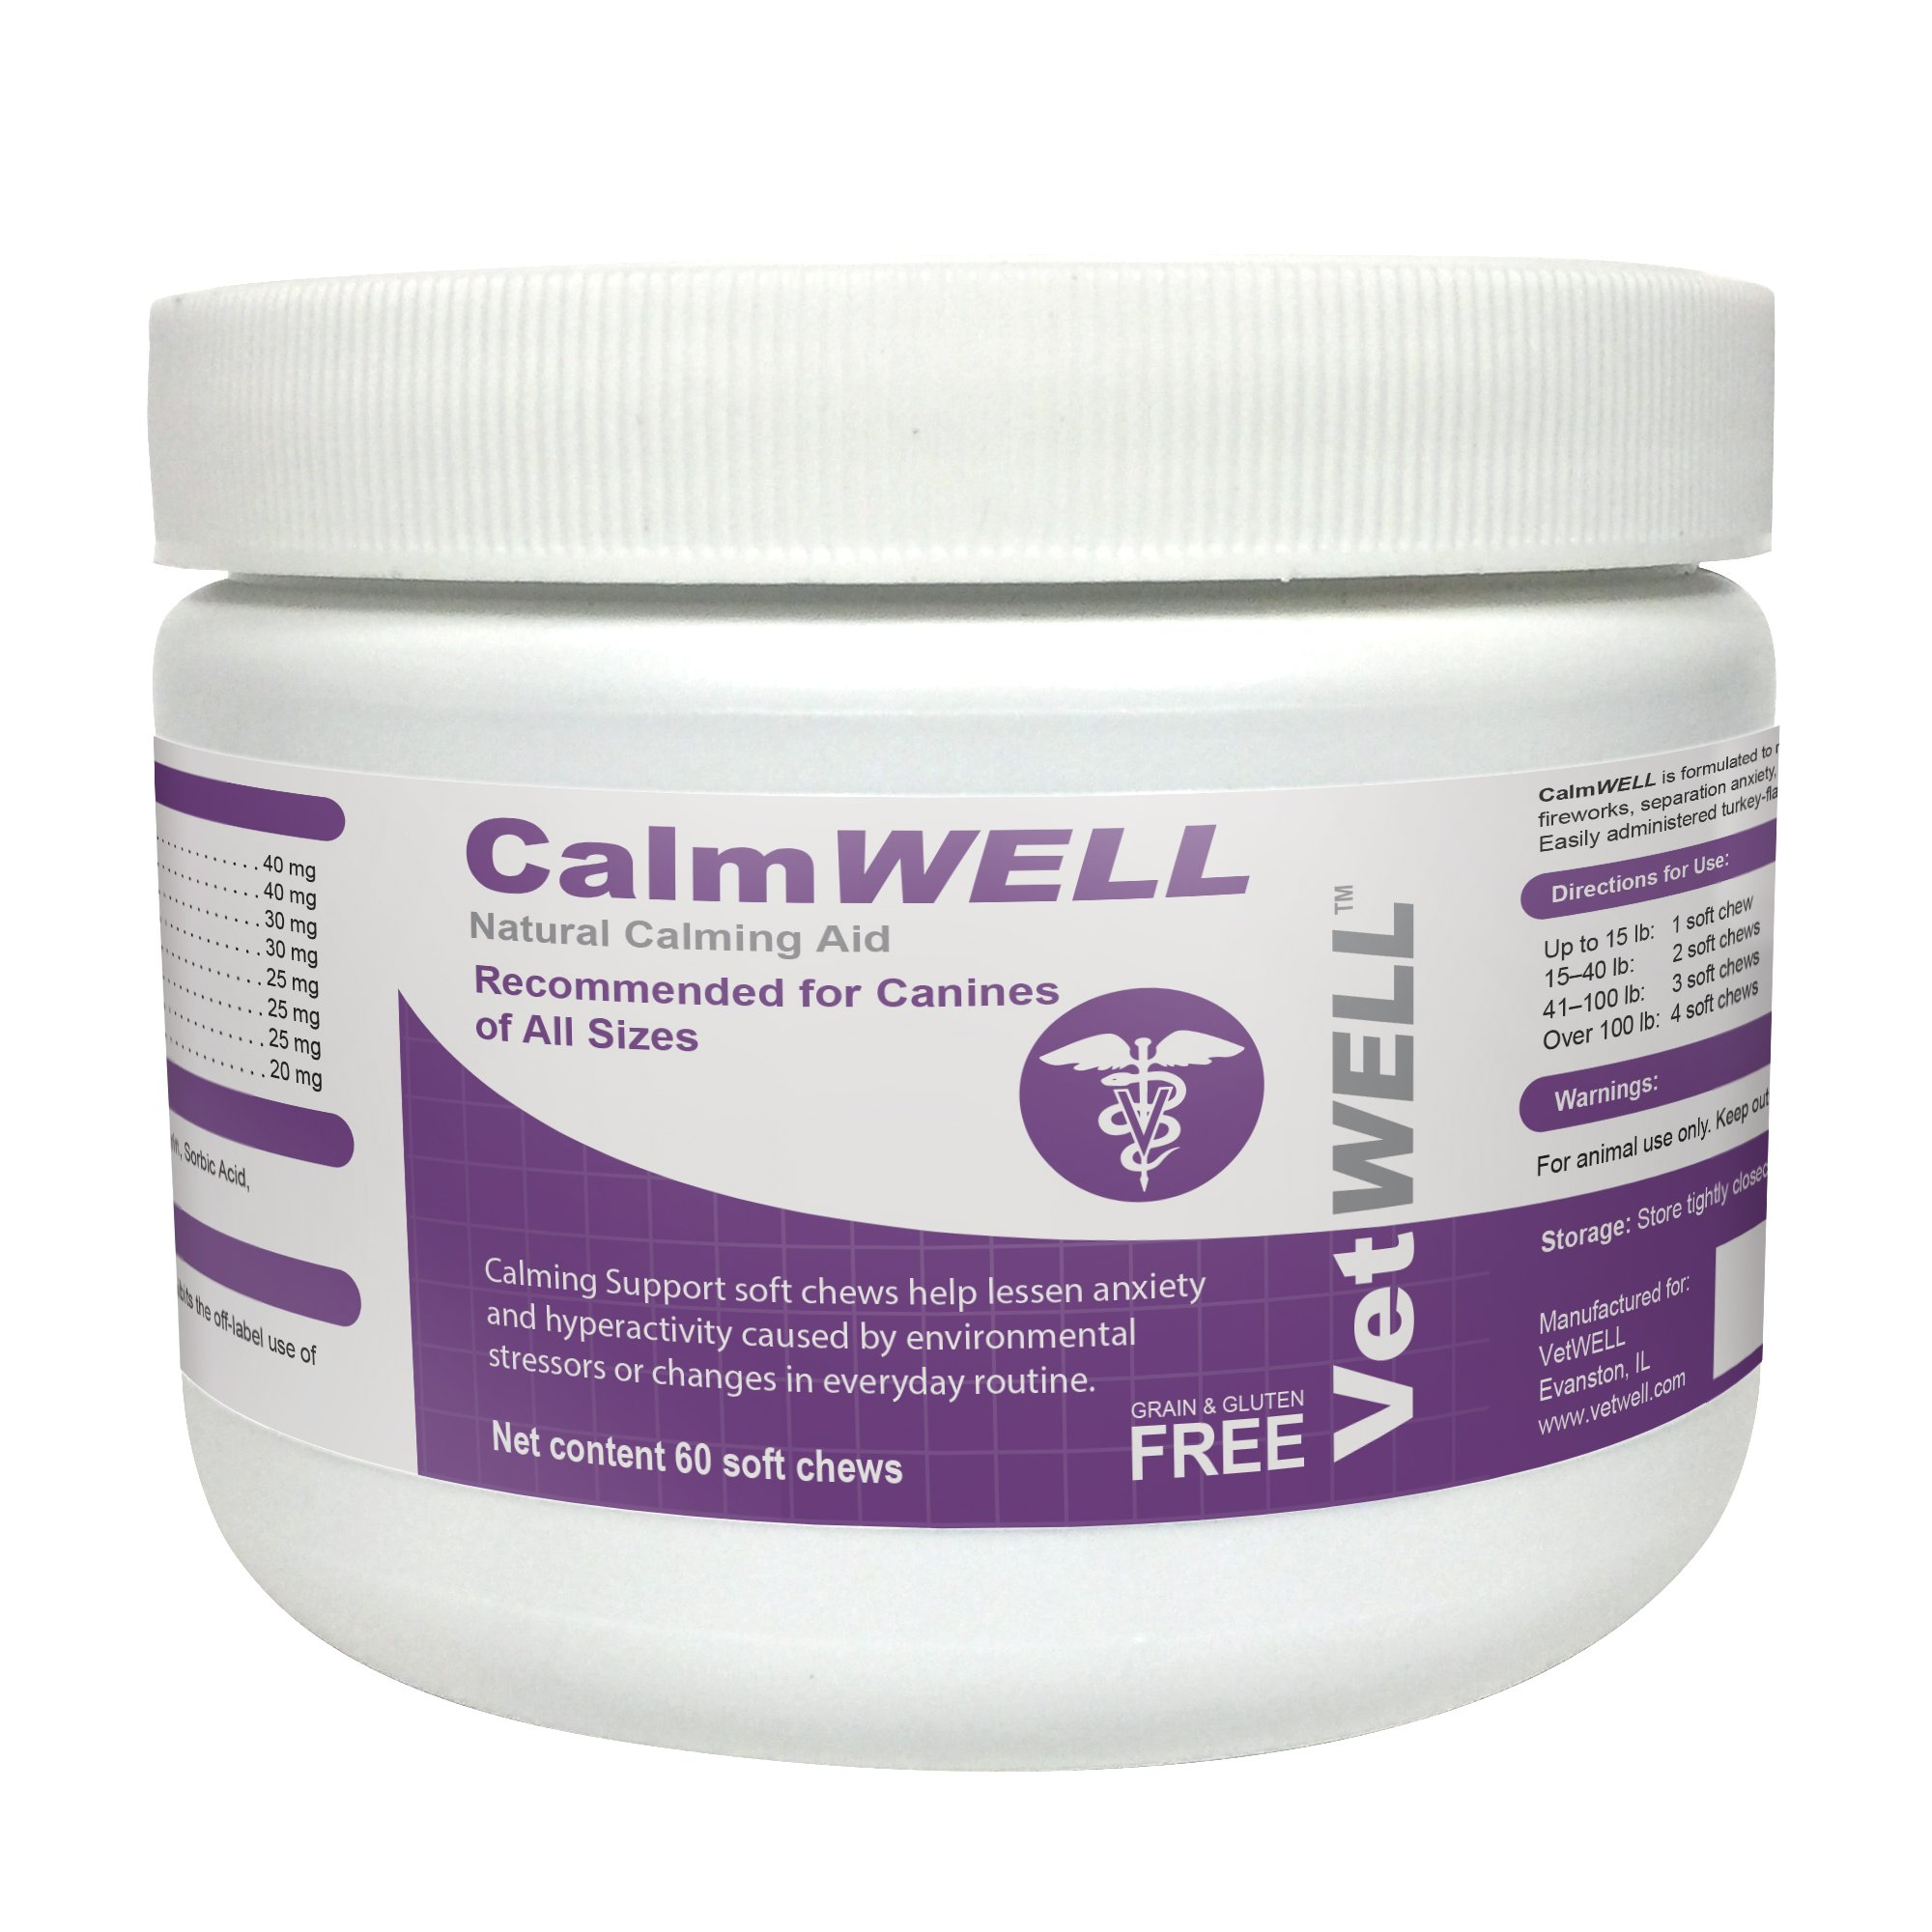 VetWELL Dog Calming Treats - Anxiety Relief Supplement for Dogs - 60 CalmWELL Grain Free Calming Chews